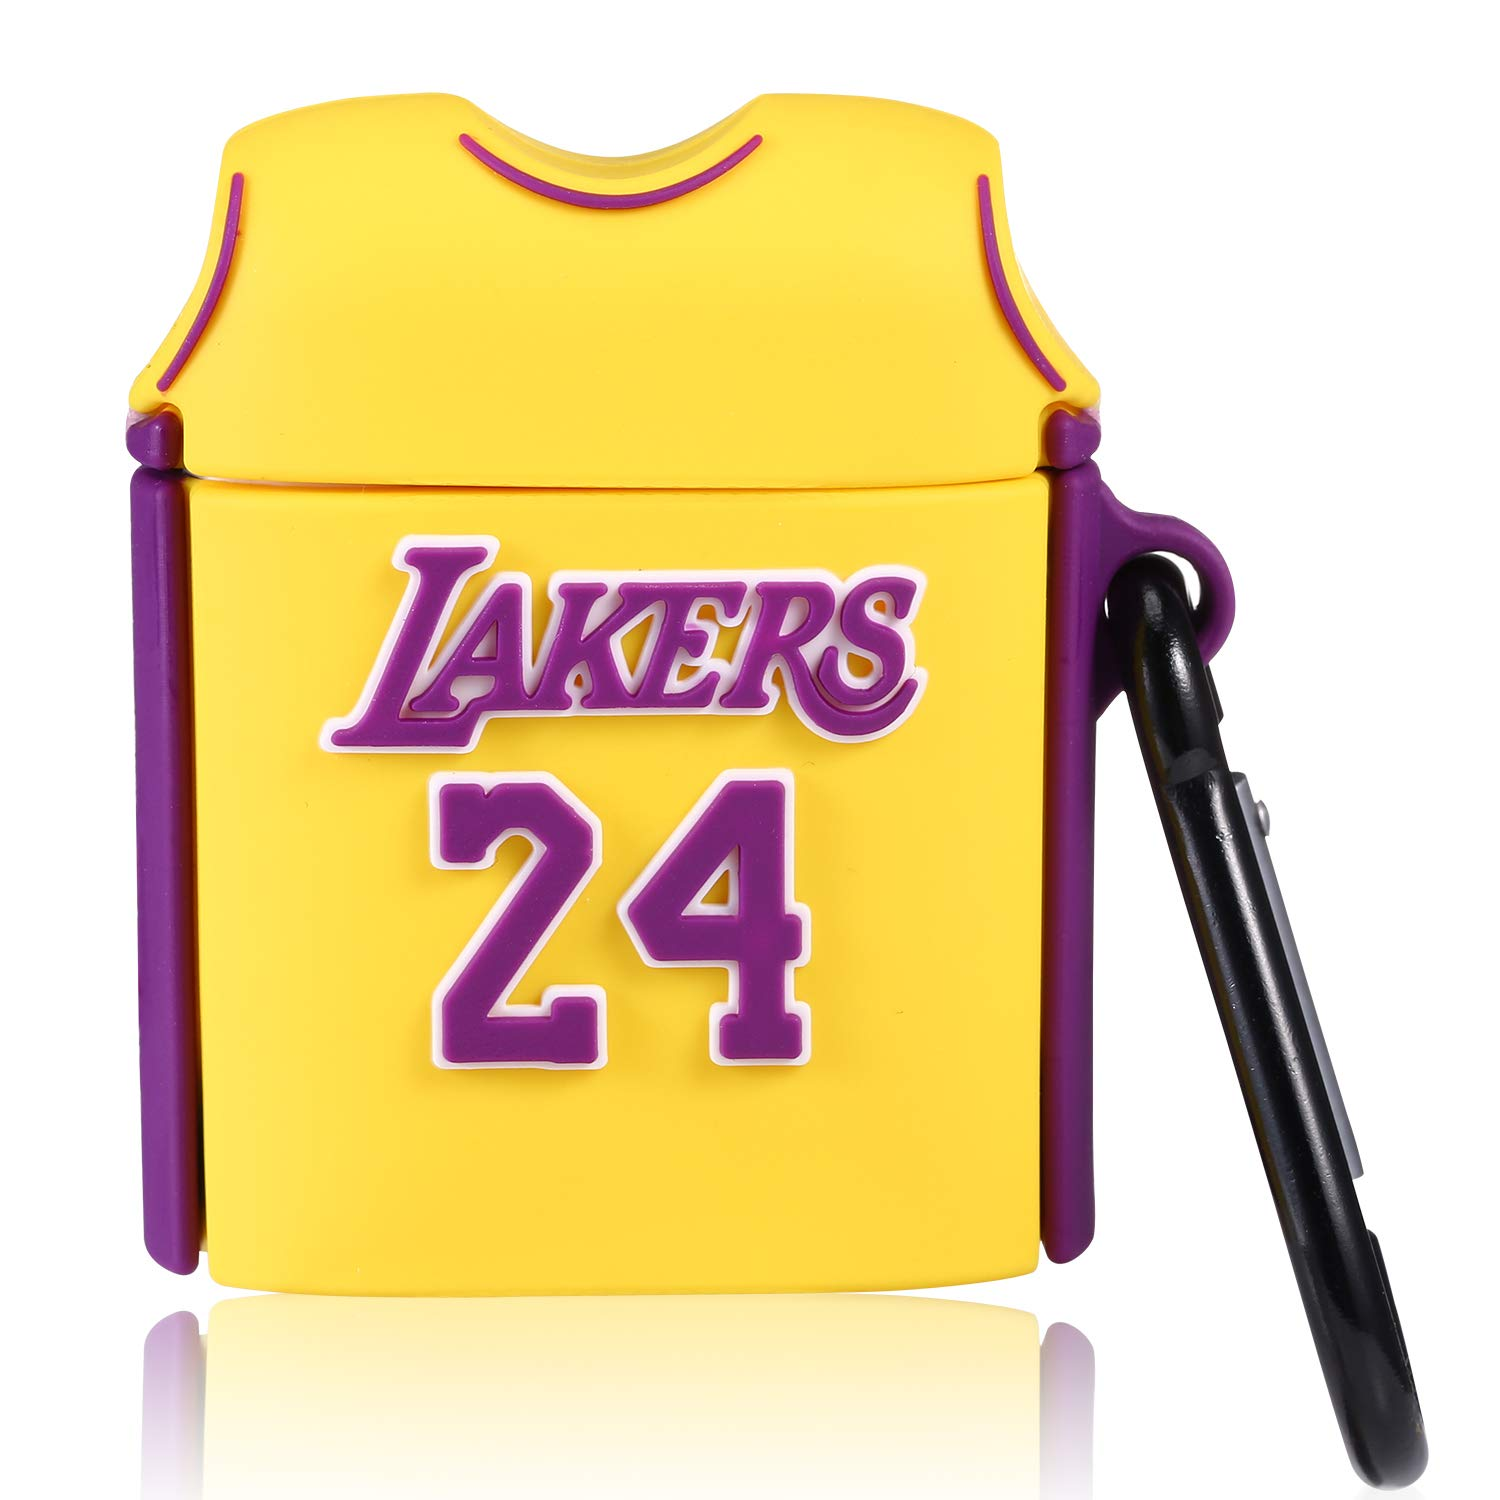 Lupct Yellow Basketball Shirt Compatible with Airpods 1/2 Case Silicone, Cute Cartoon 3D Cool Air pods Design Cover, Fun Fashion Stylish Funny Cases for Kids Teens Boys Character Skin Keychain Airpod